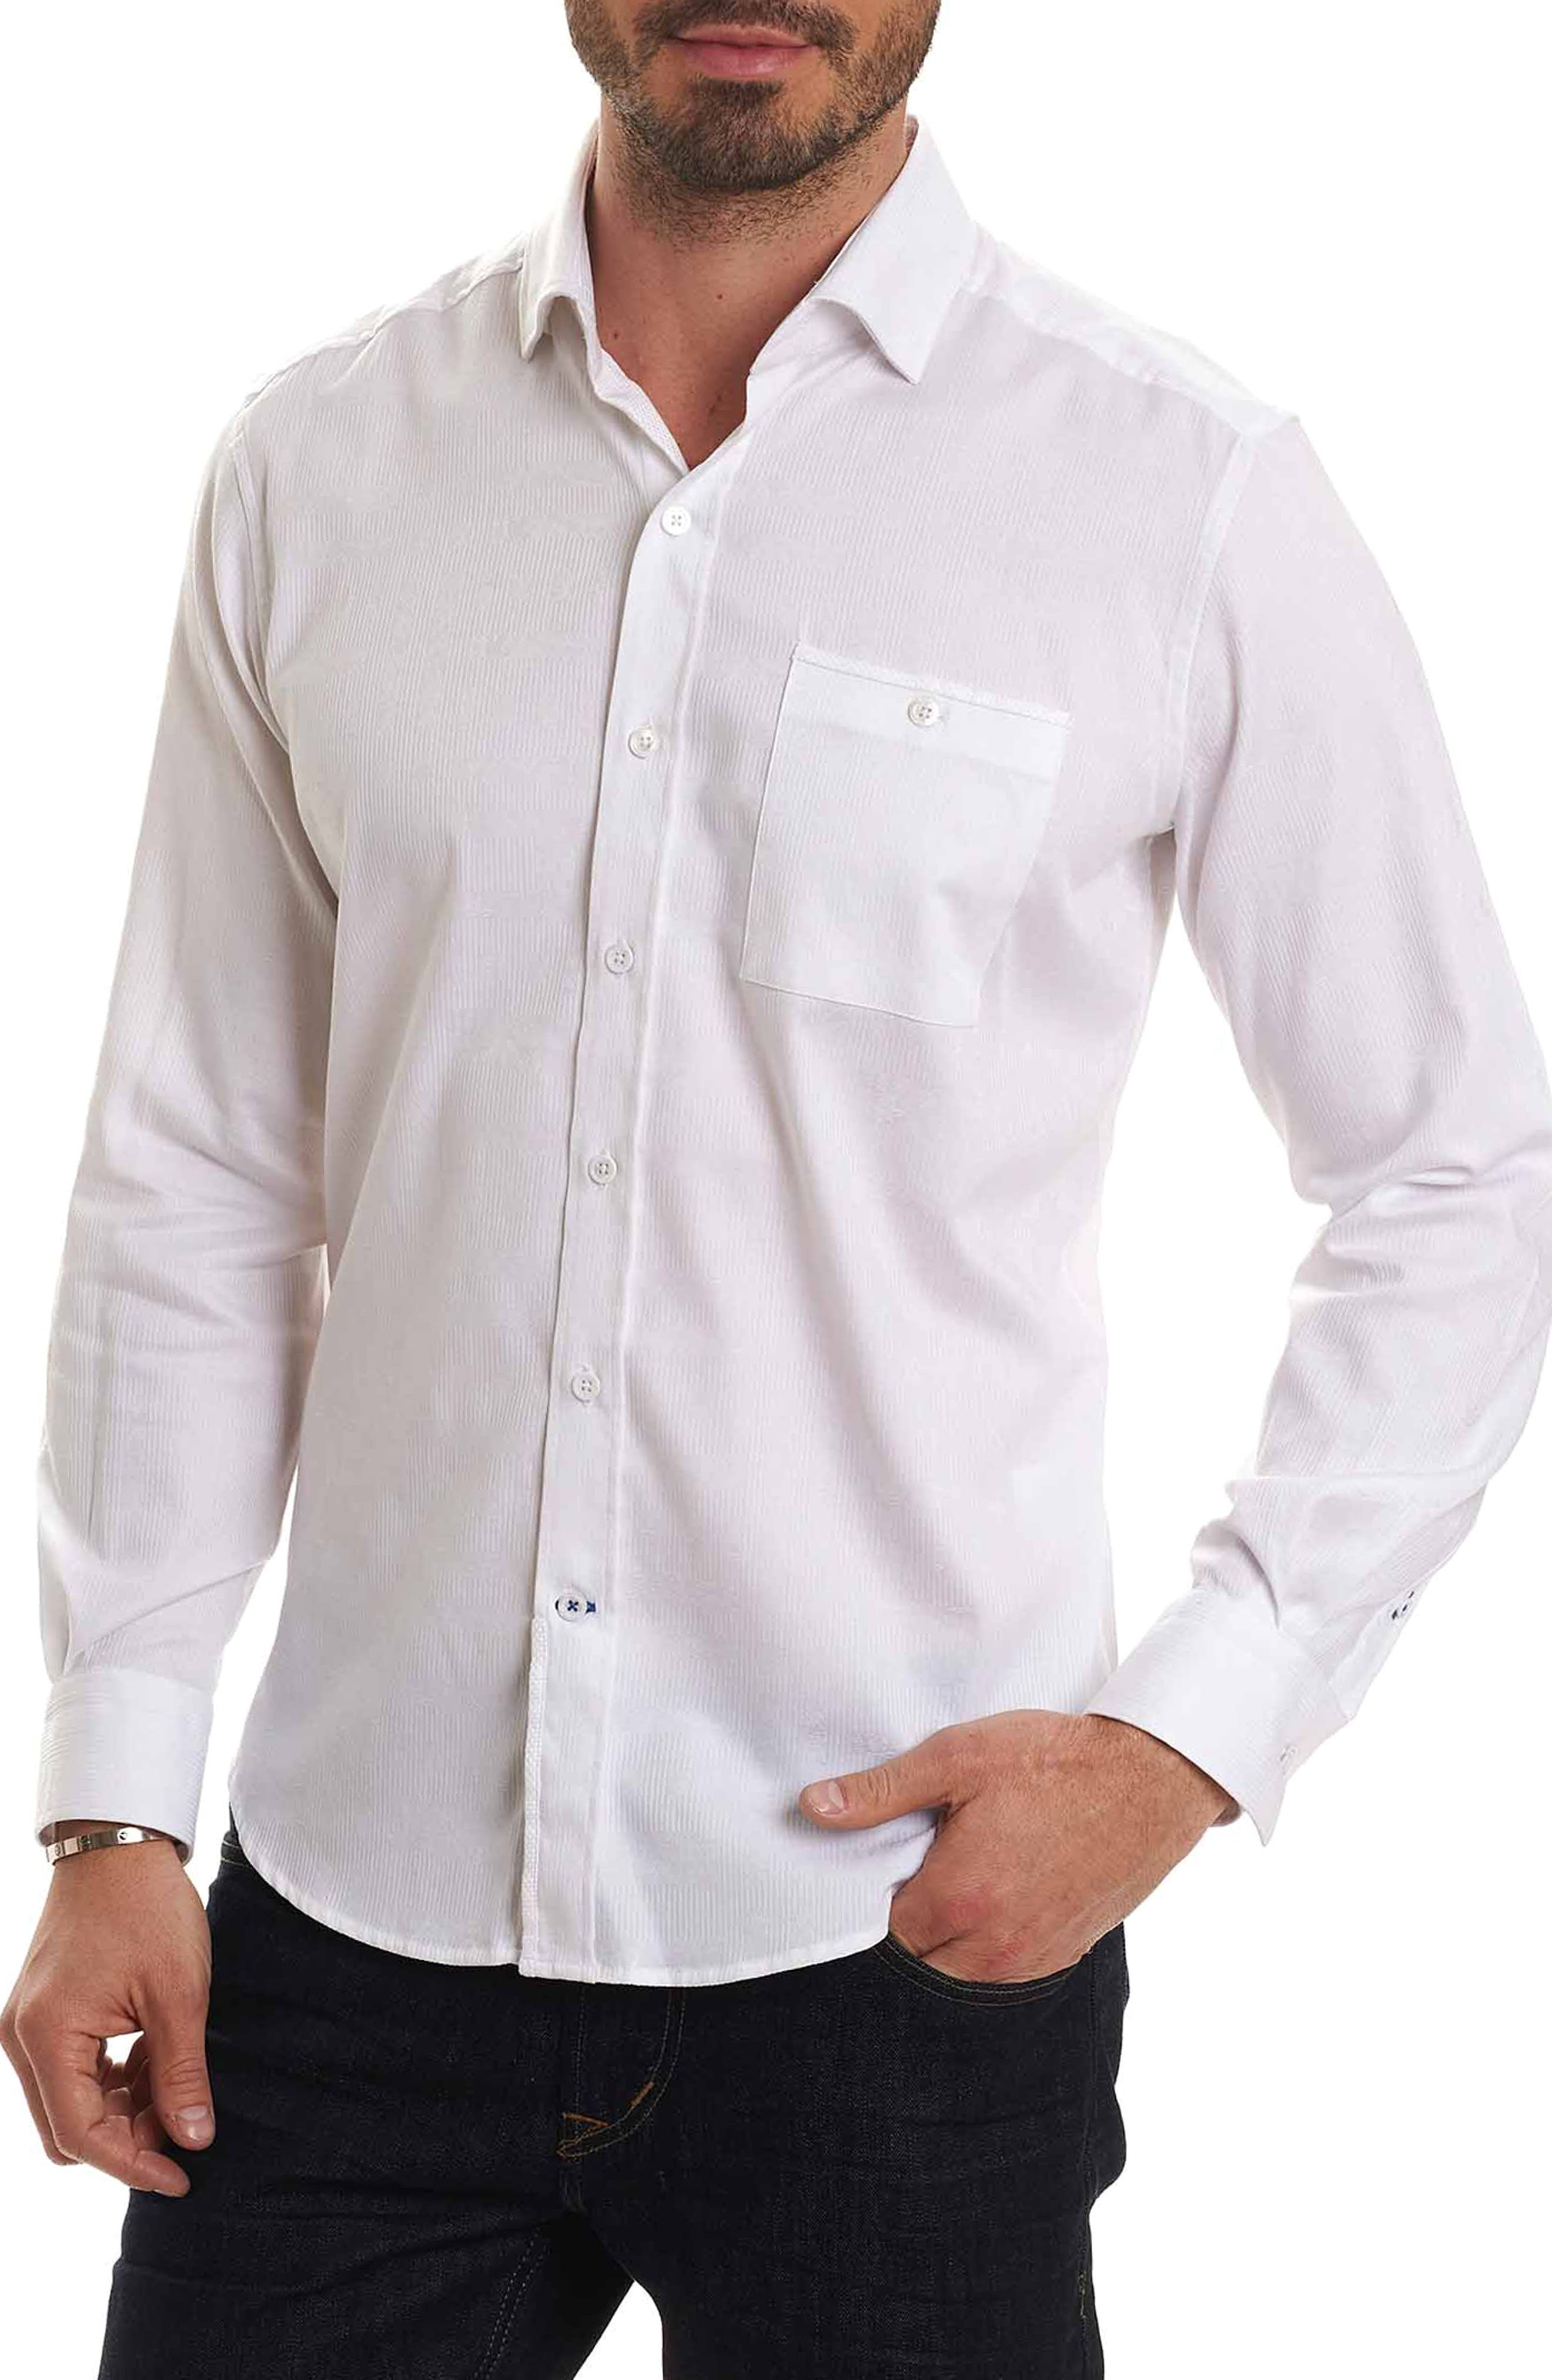 Christopher Print Sport Shirt,                         Main,                         color, White